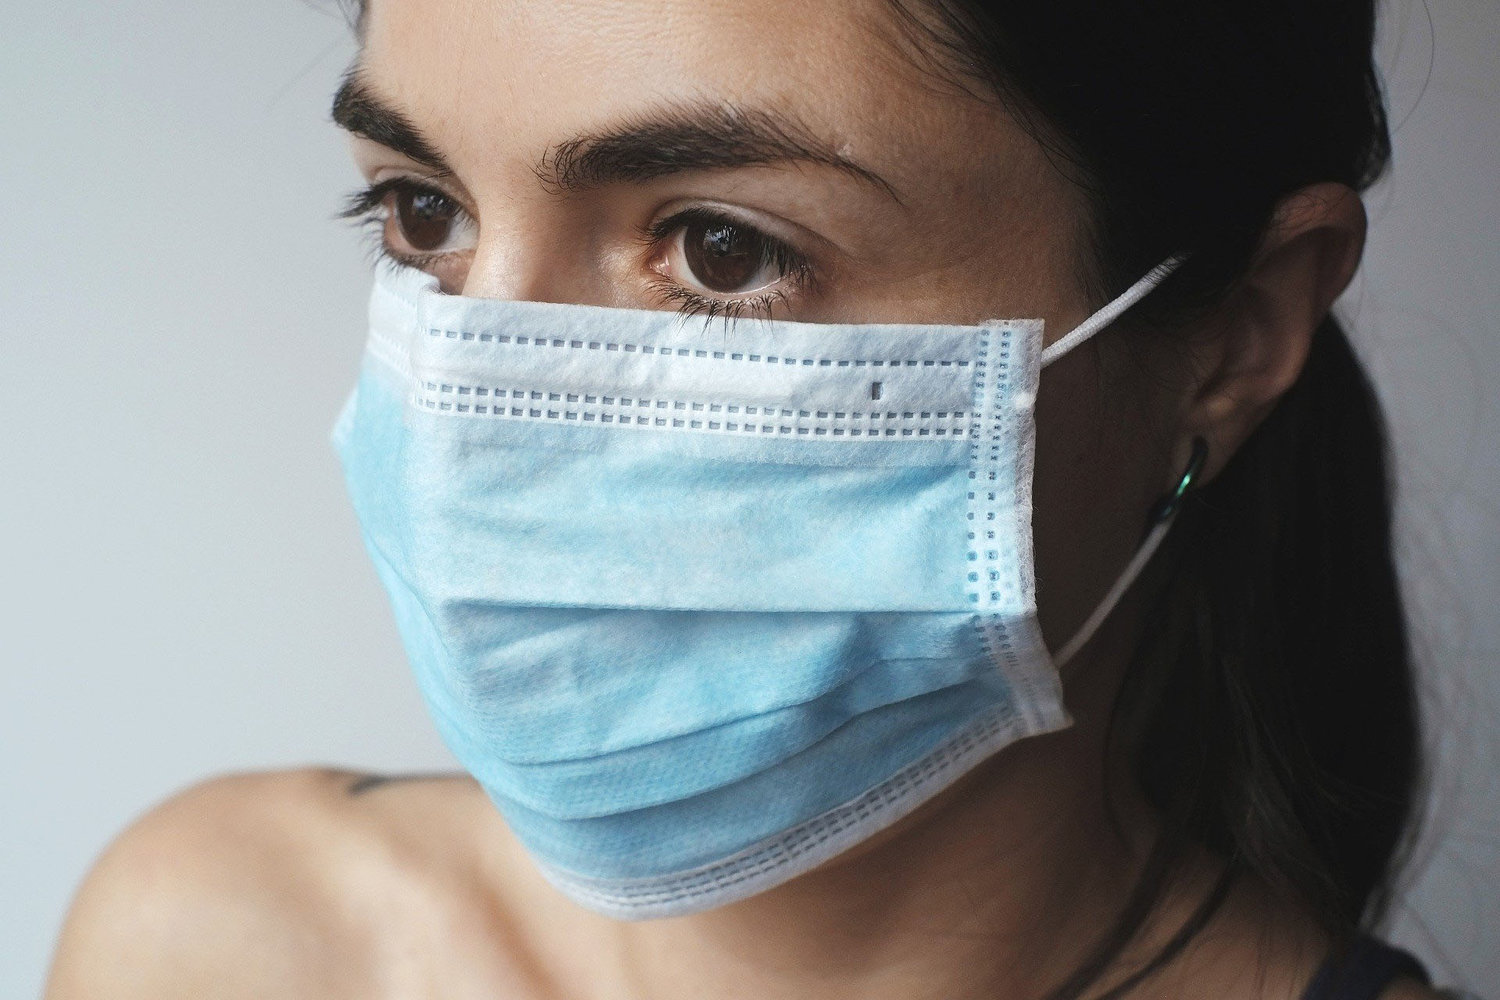 CDC recommends everyone wear face masks in public